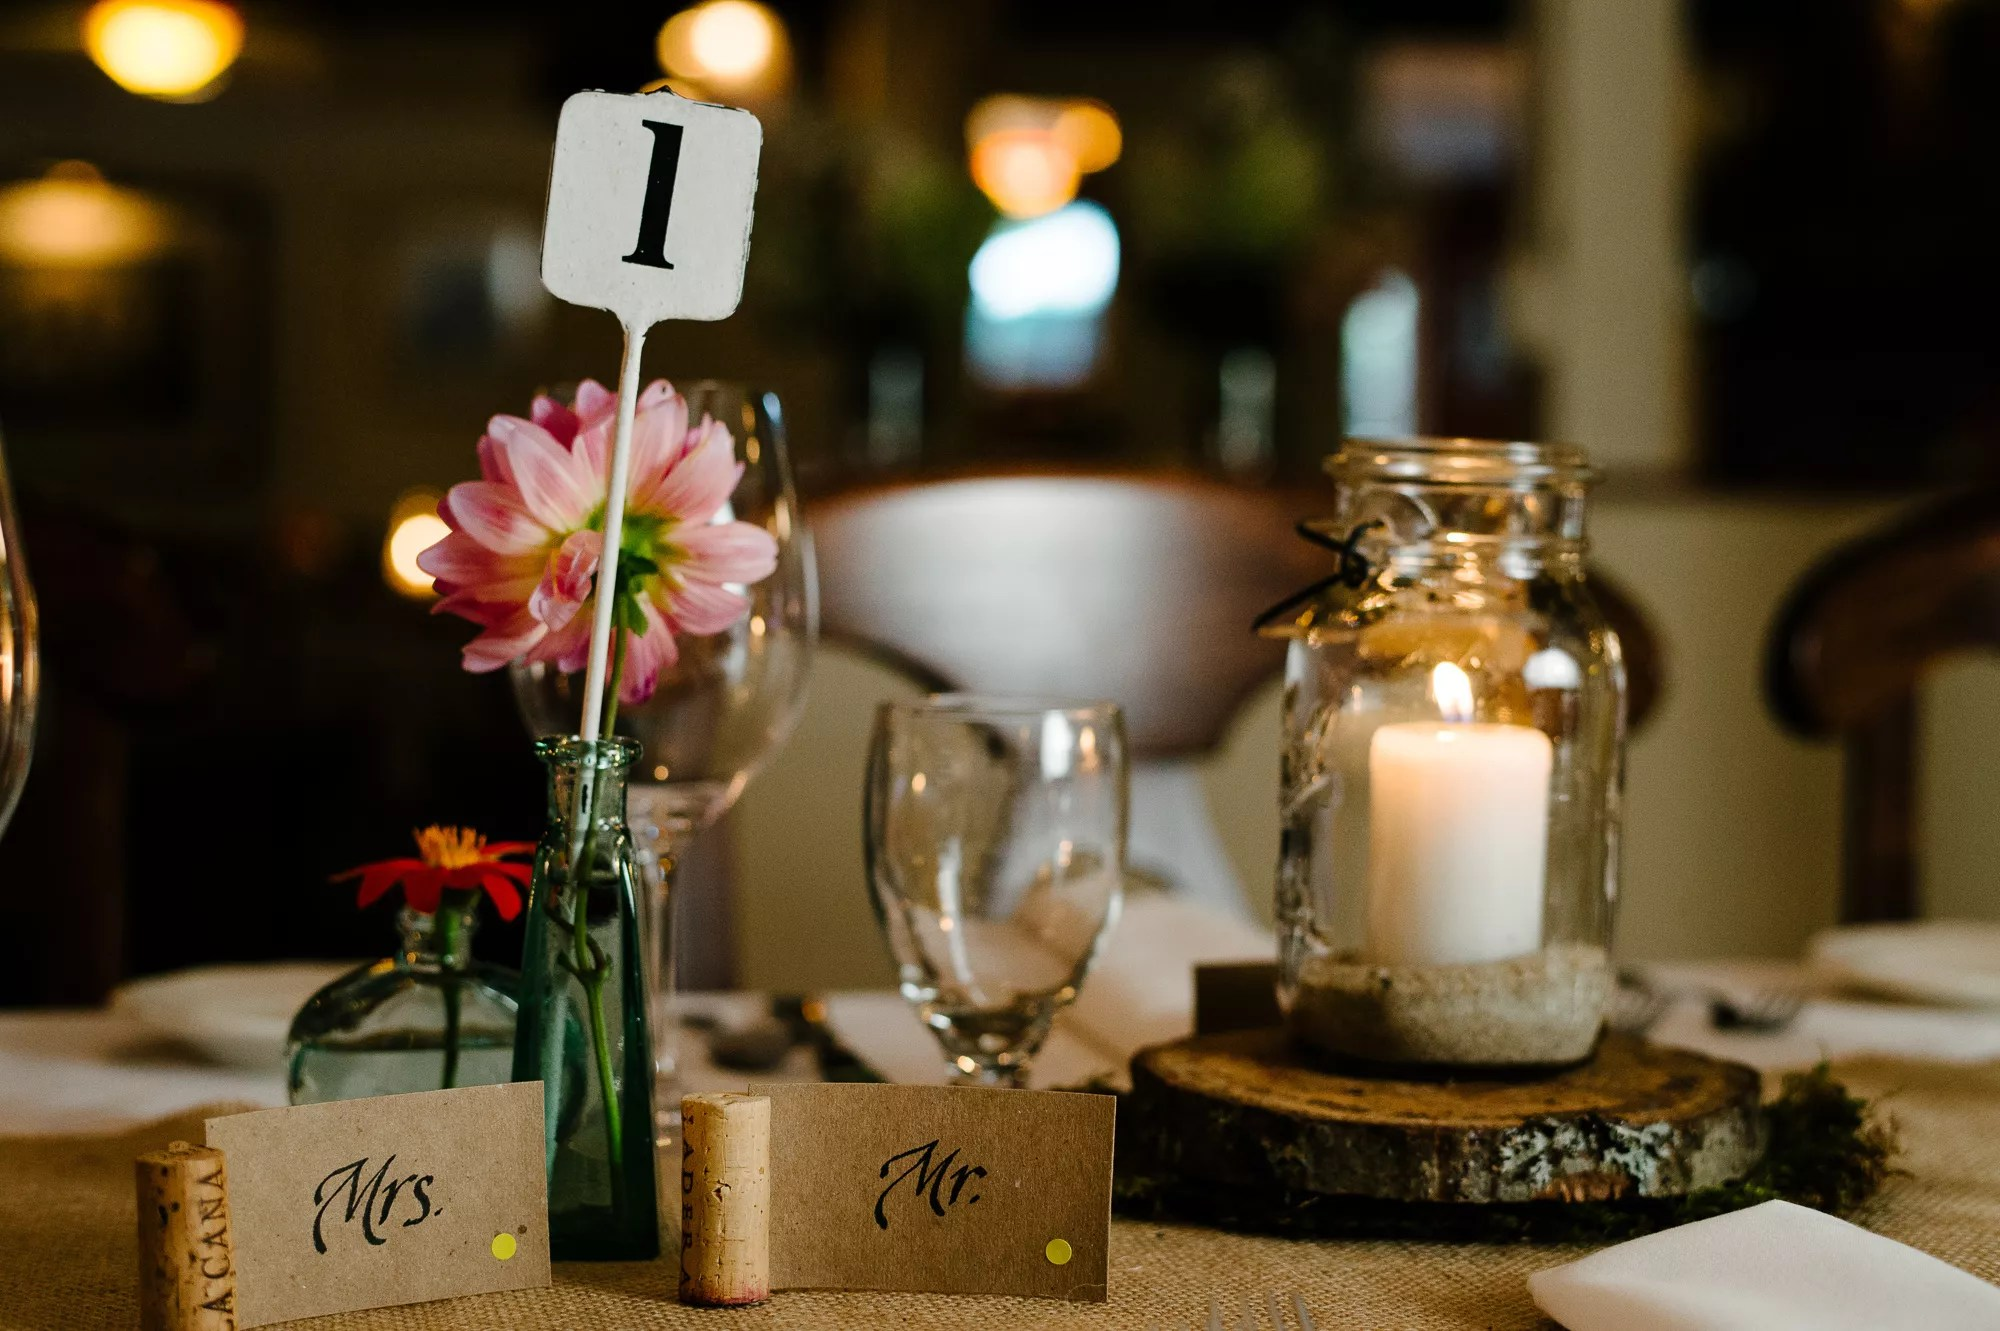 DIY Wine Cork Place Cards